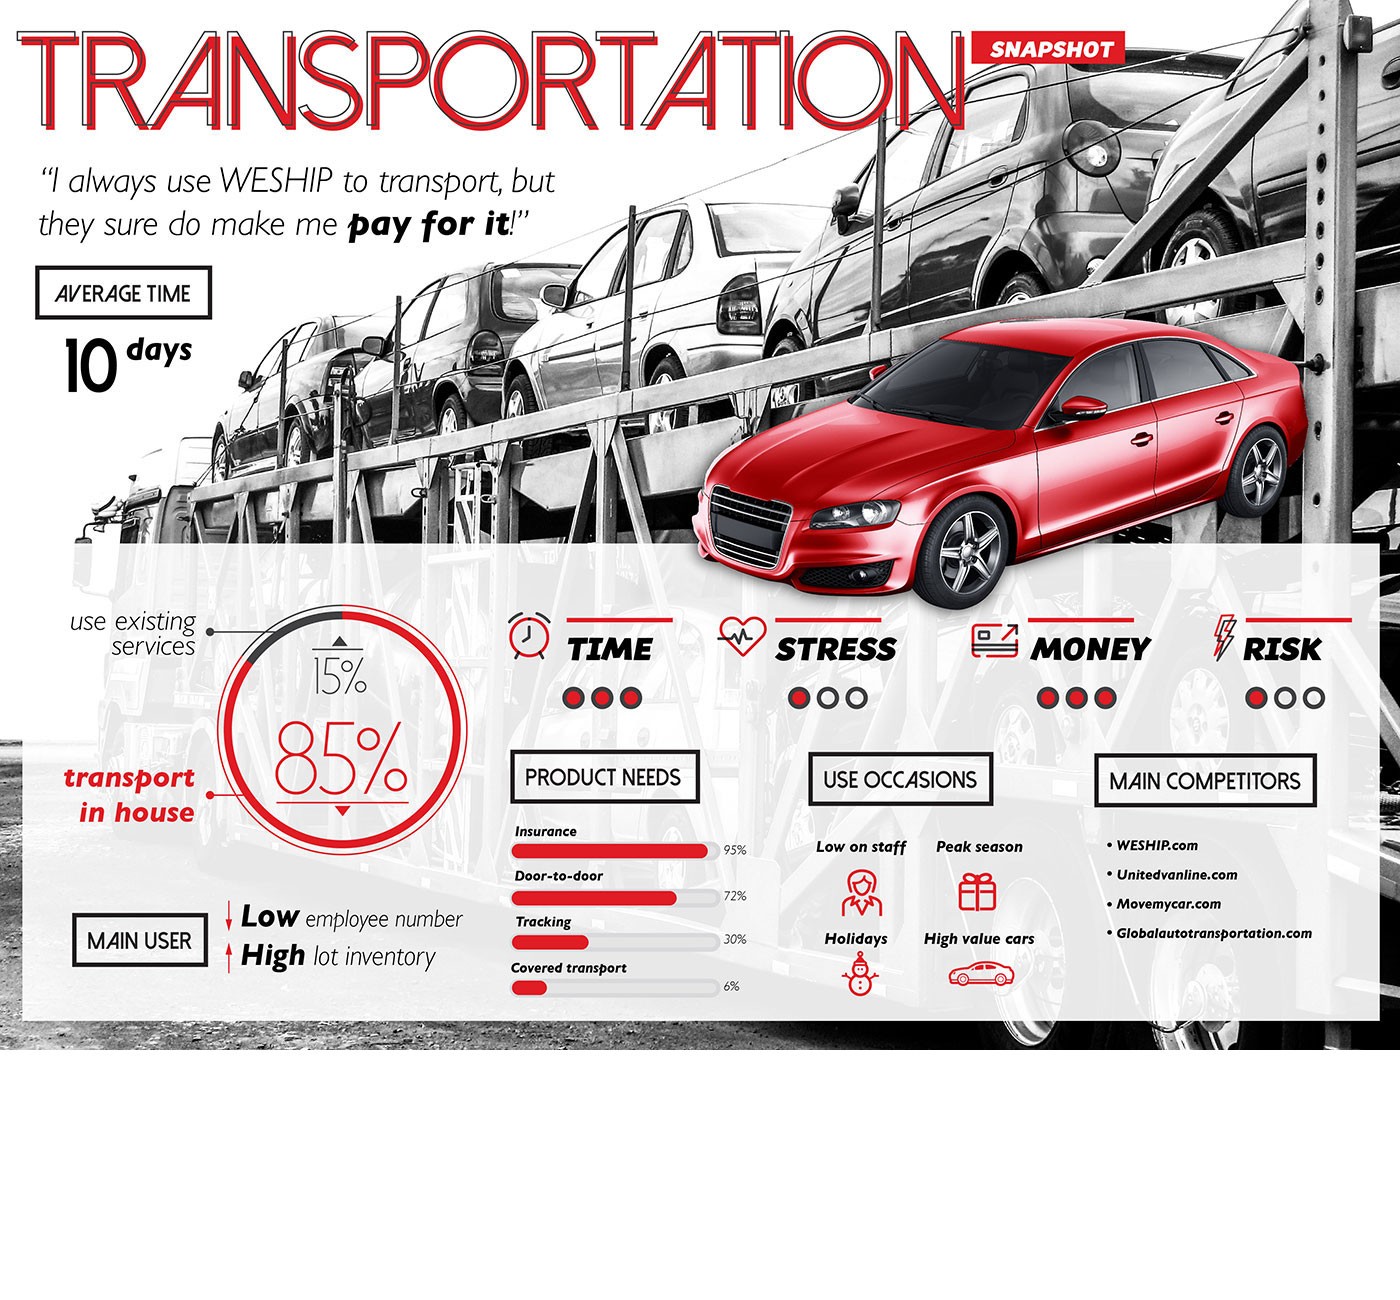 Market Research Infographic - Transportation